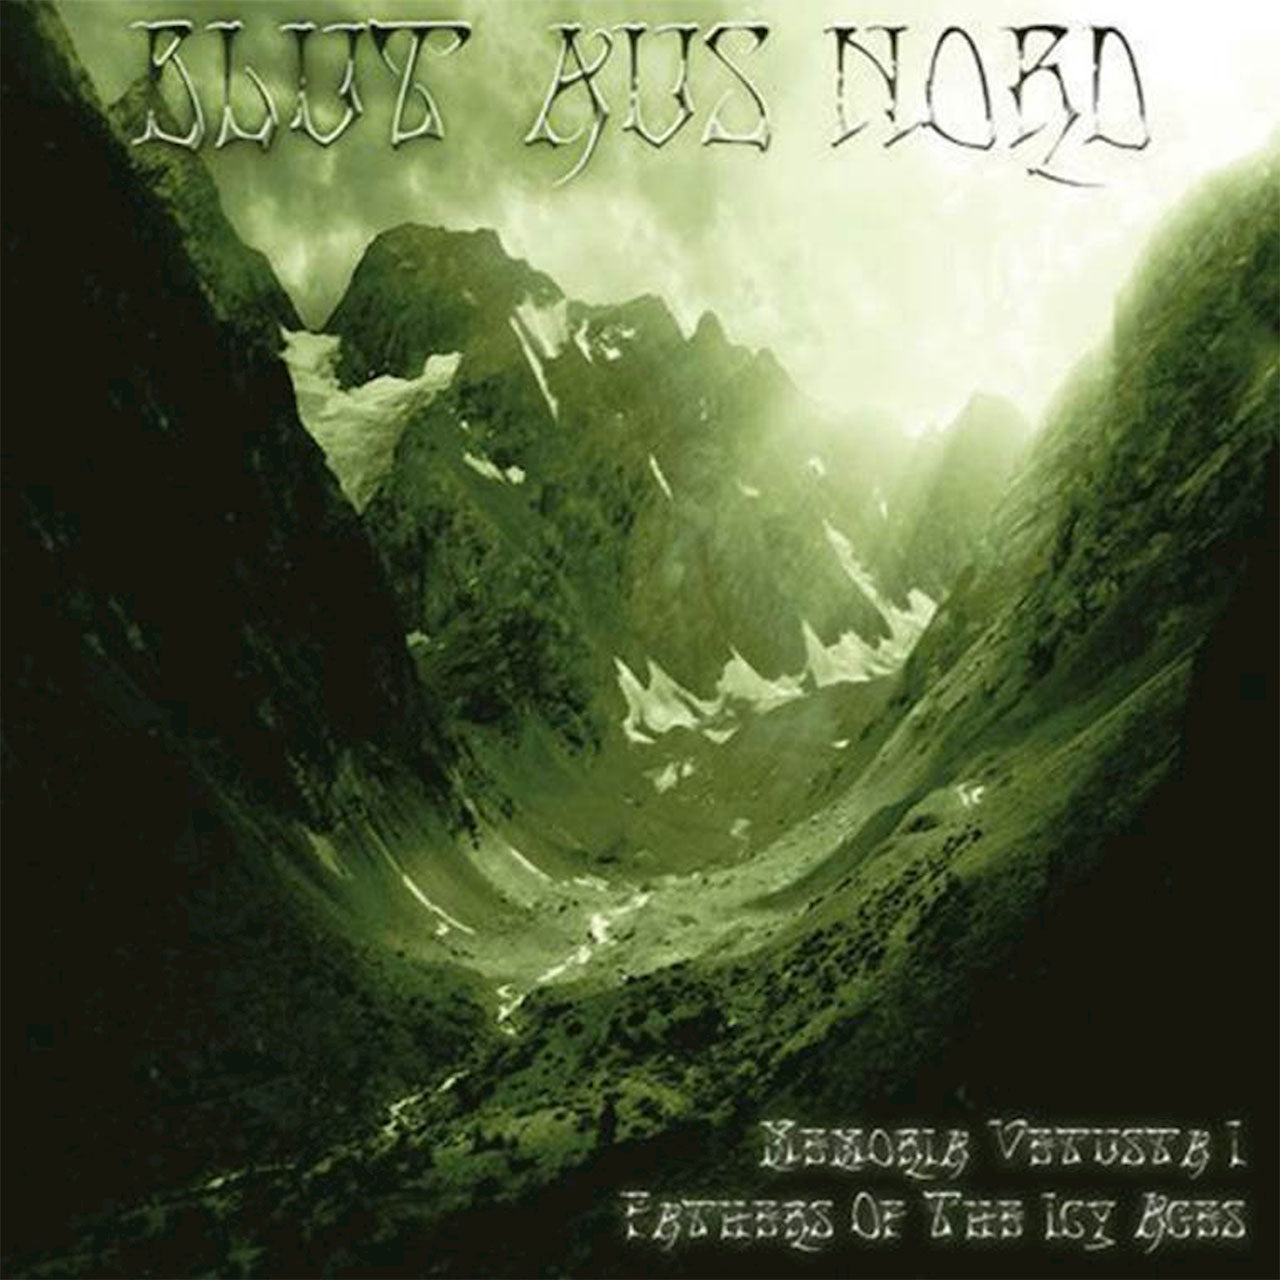 Blut aus Nord - Memoria Vetusta I: Fathers of the Icy Age (2005 Reissue) (CD)